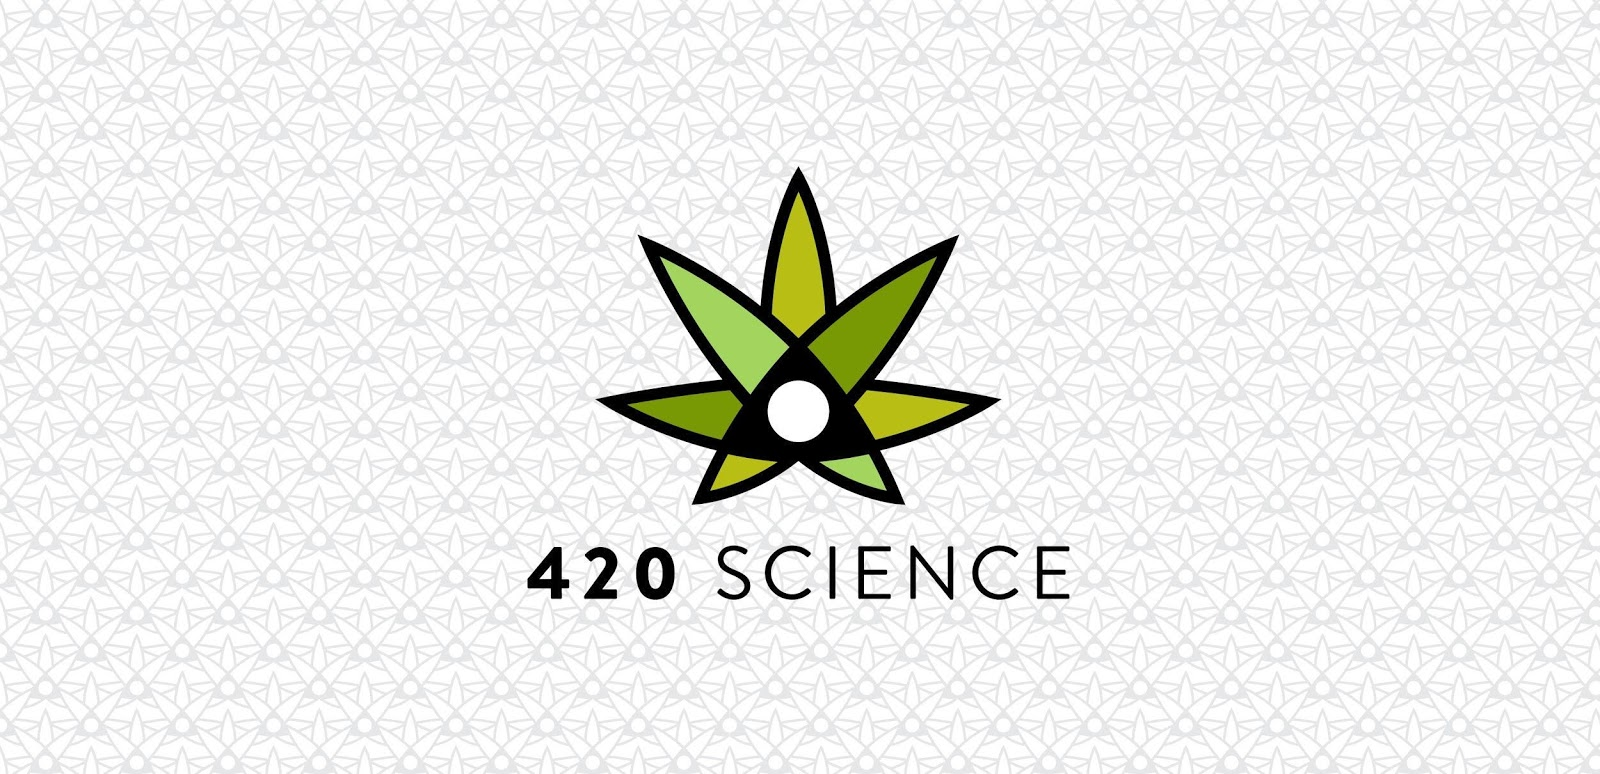 420 Science refreshes their brand identity